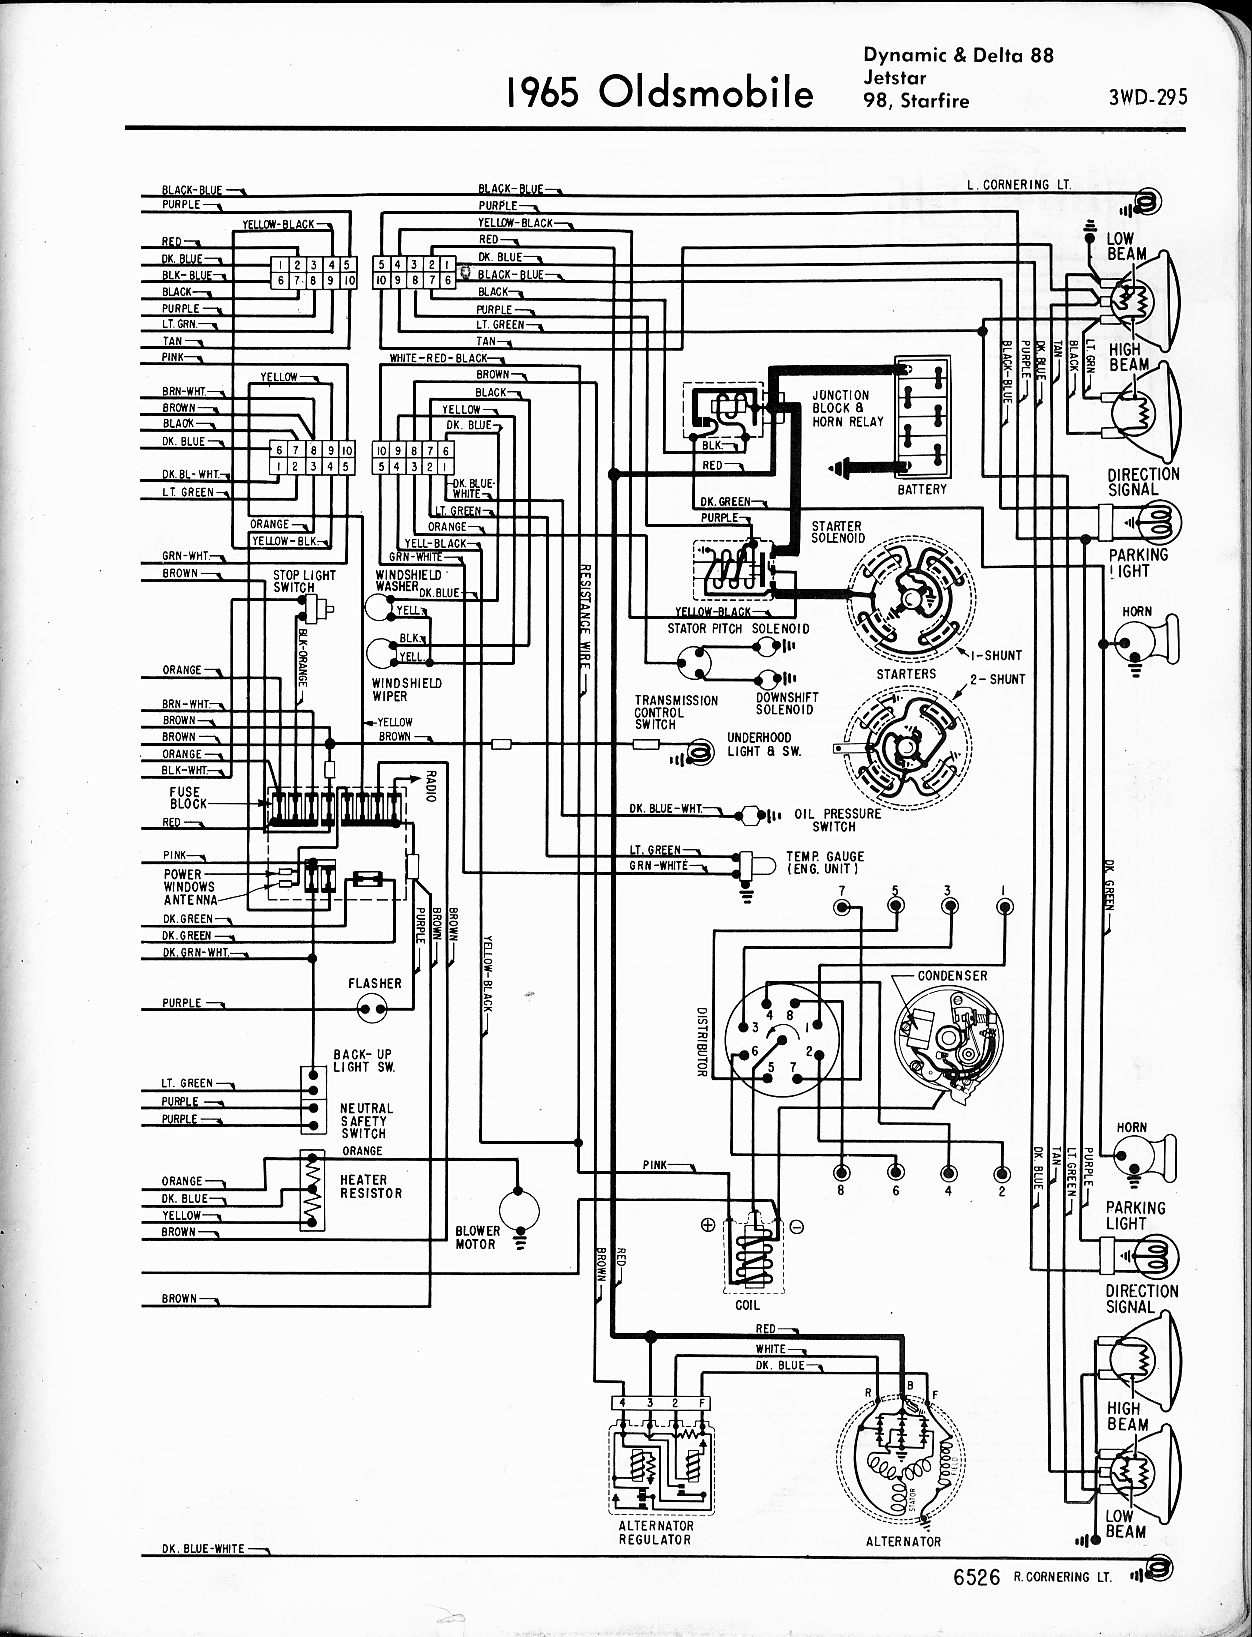 1976 Cutlass Wiring Diagram Custom Project Chevy 4 3 Vortec Engine 455 Oldsmobile